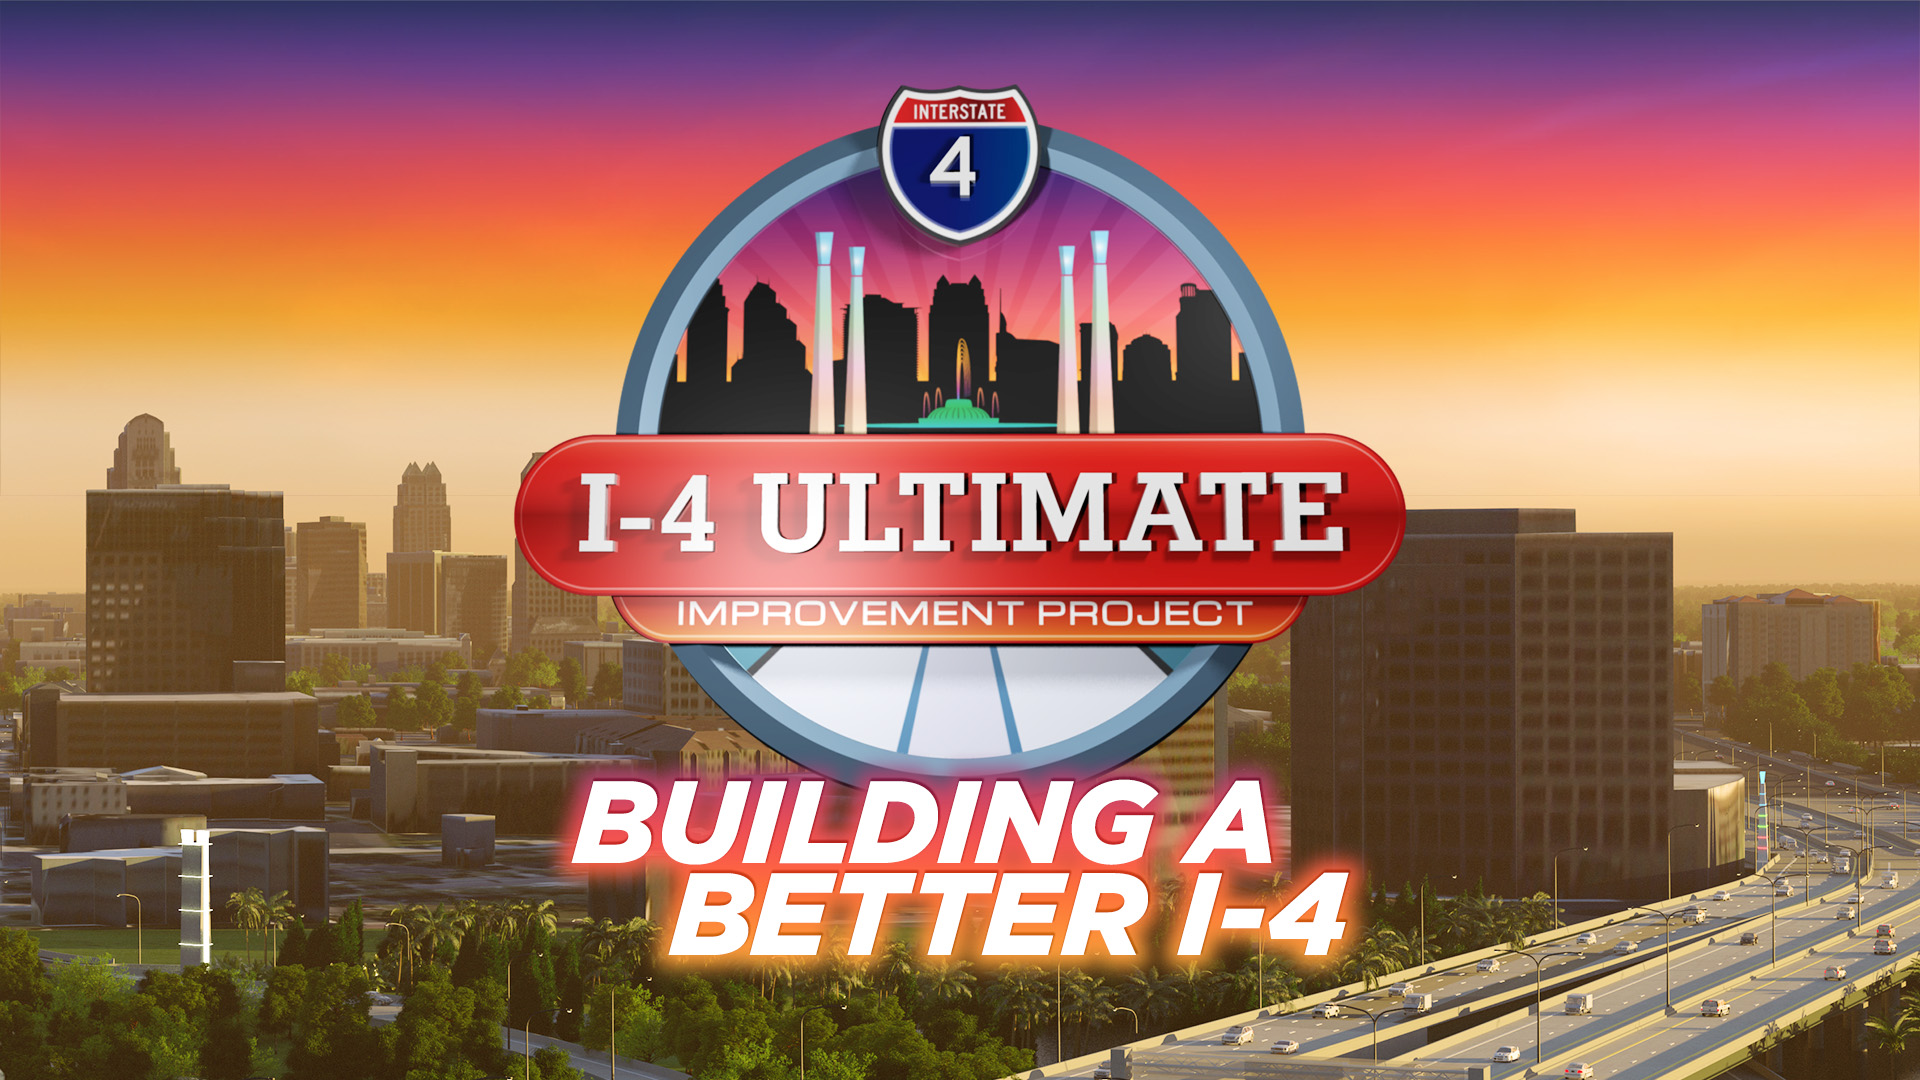 Global-5 wins Telly Award for producing Building a Better I-4 video